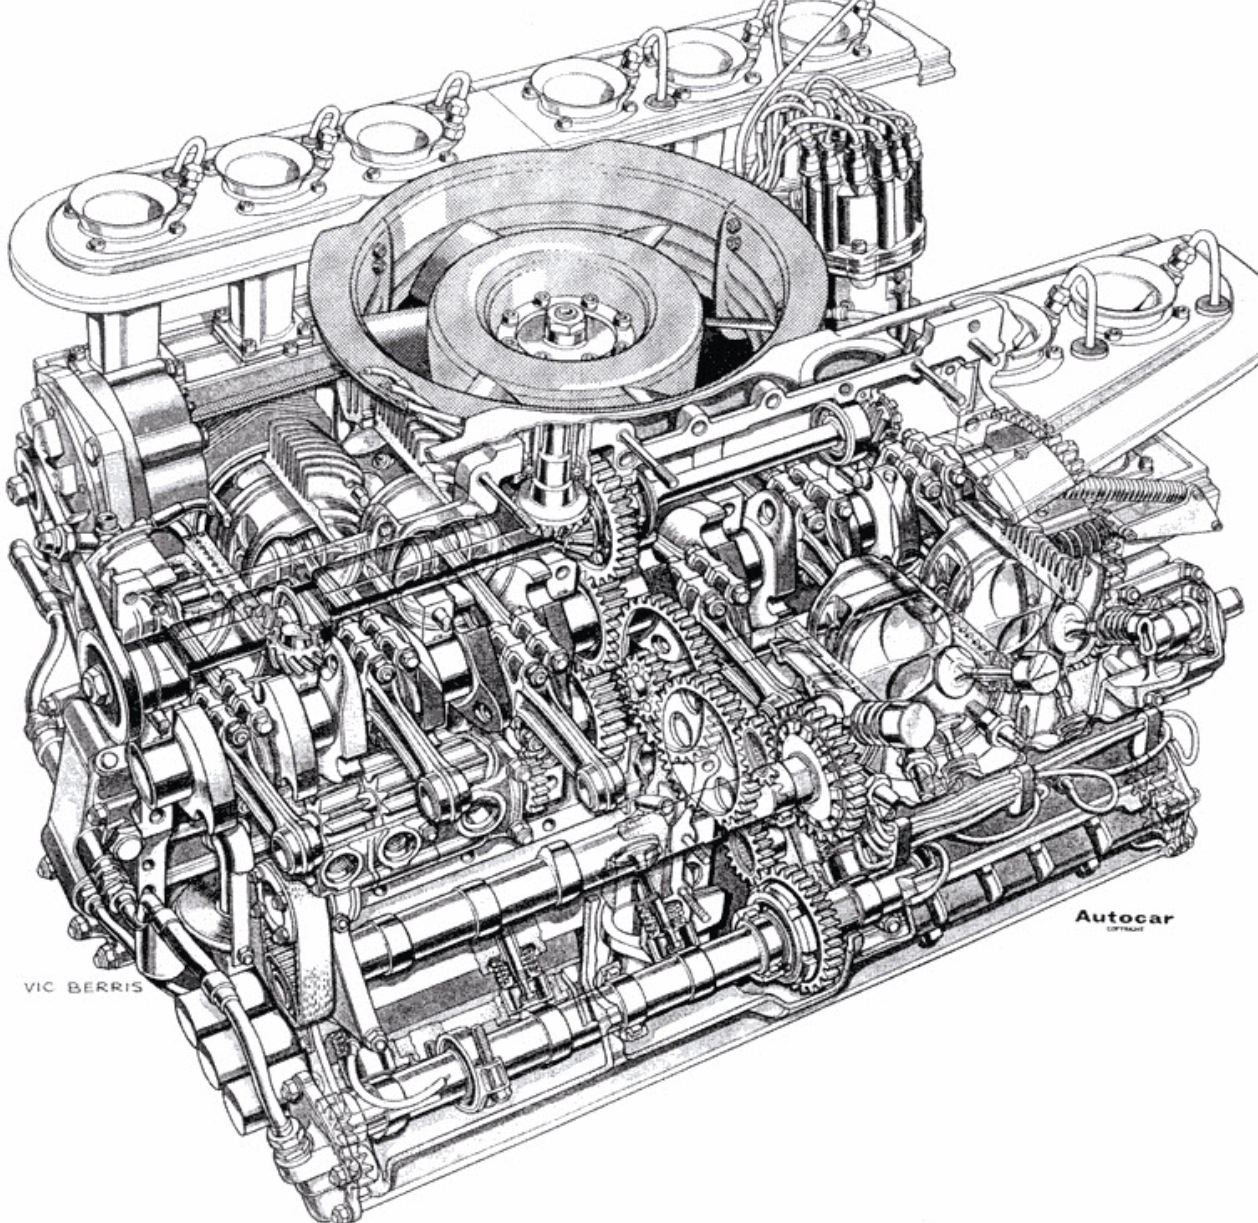 Porsche Engine Diagram Change Your Idea With Wiring Design Of 1987 911 The Amazo Effect Cutaway Files 917 By Rh Theamazoeffect Blogspot Com 944